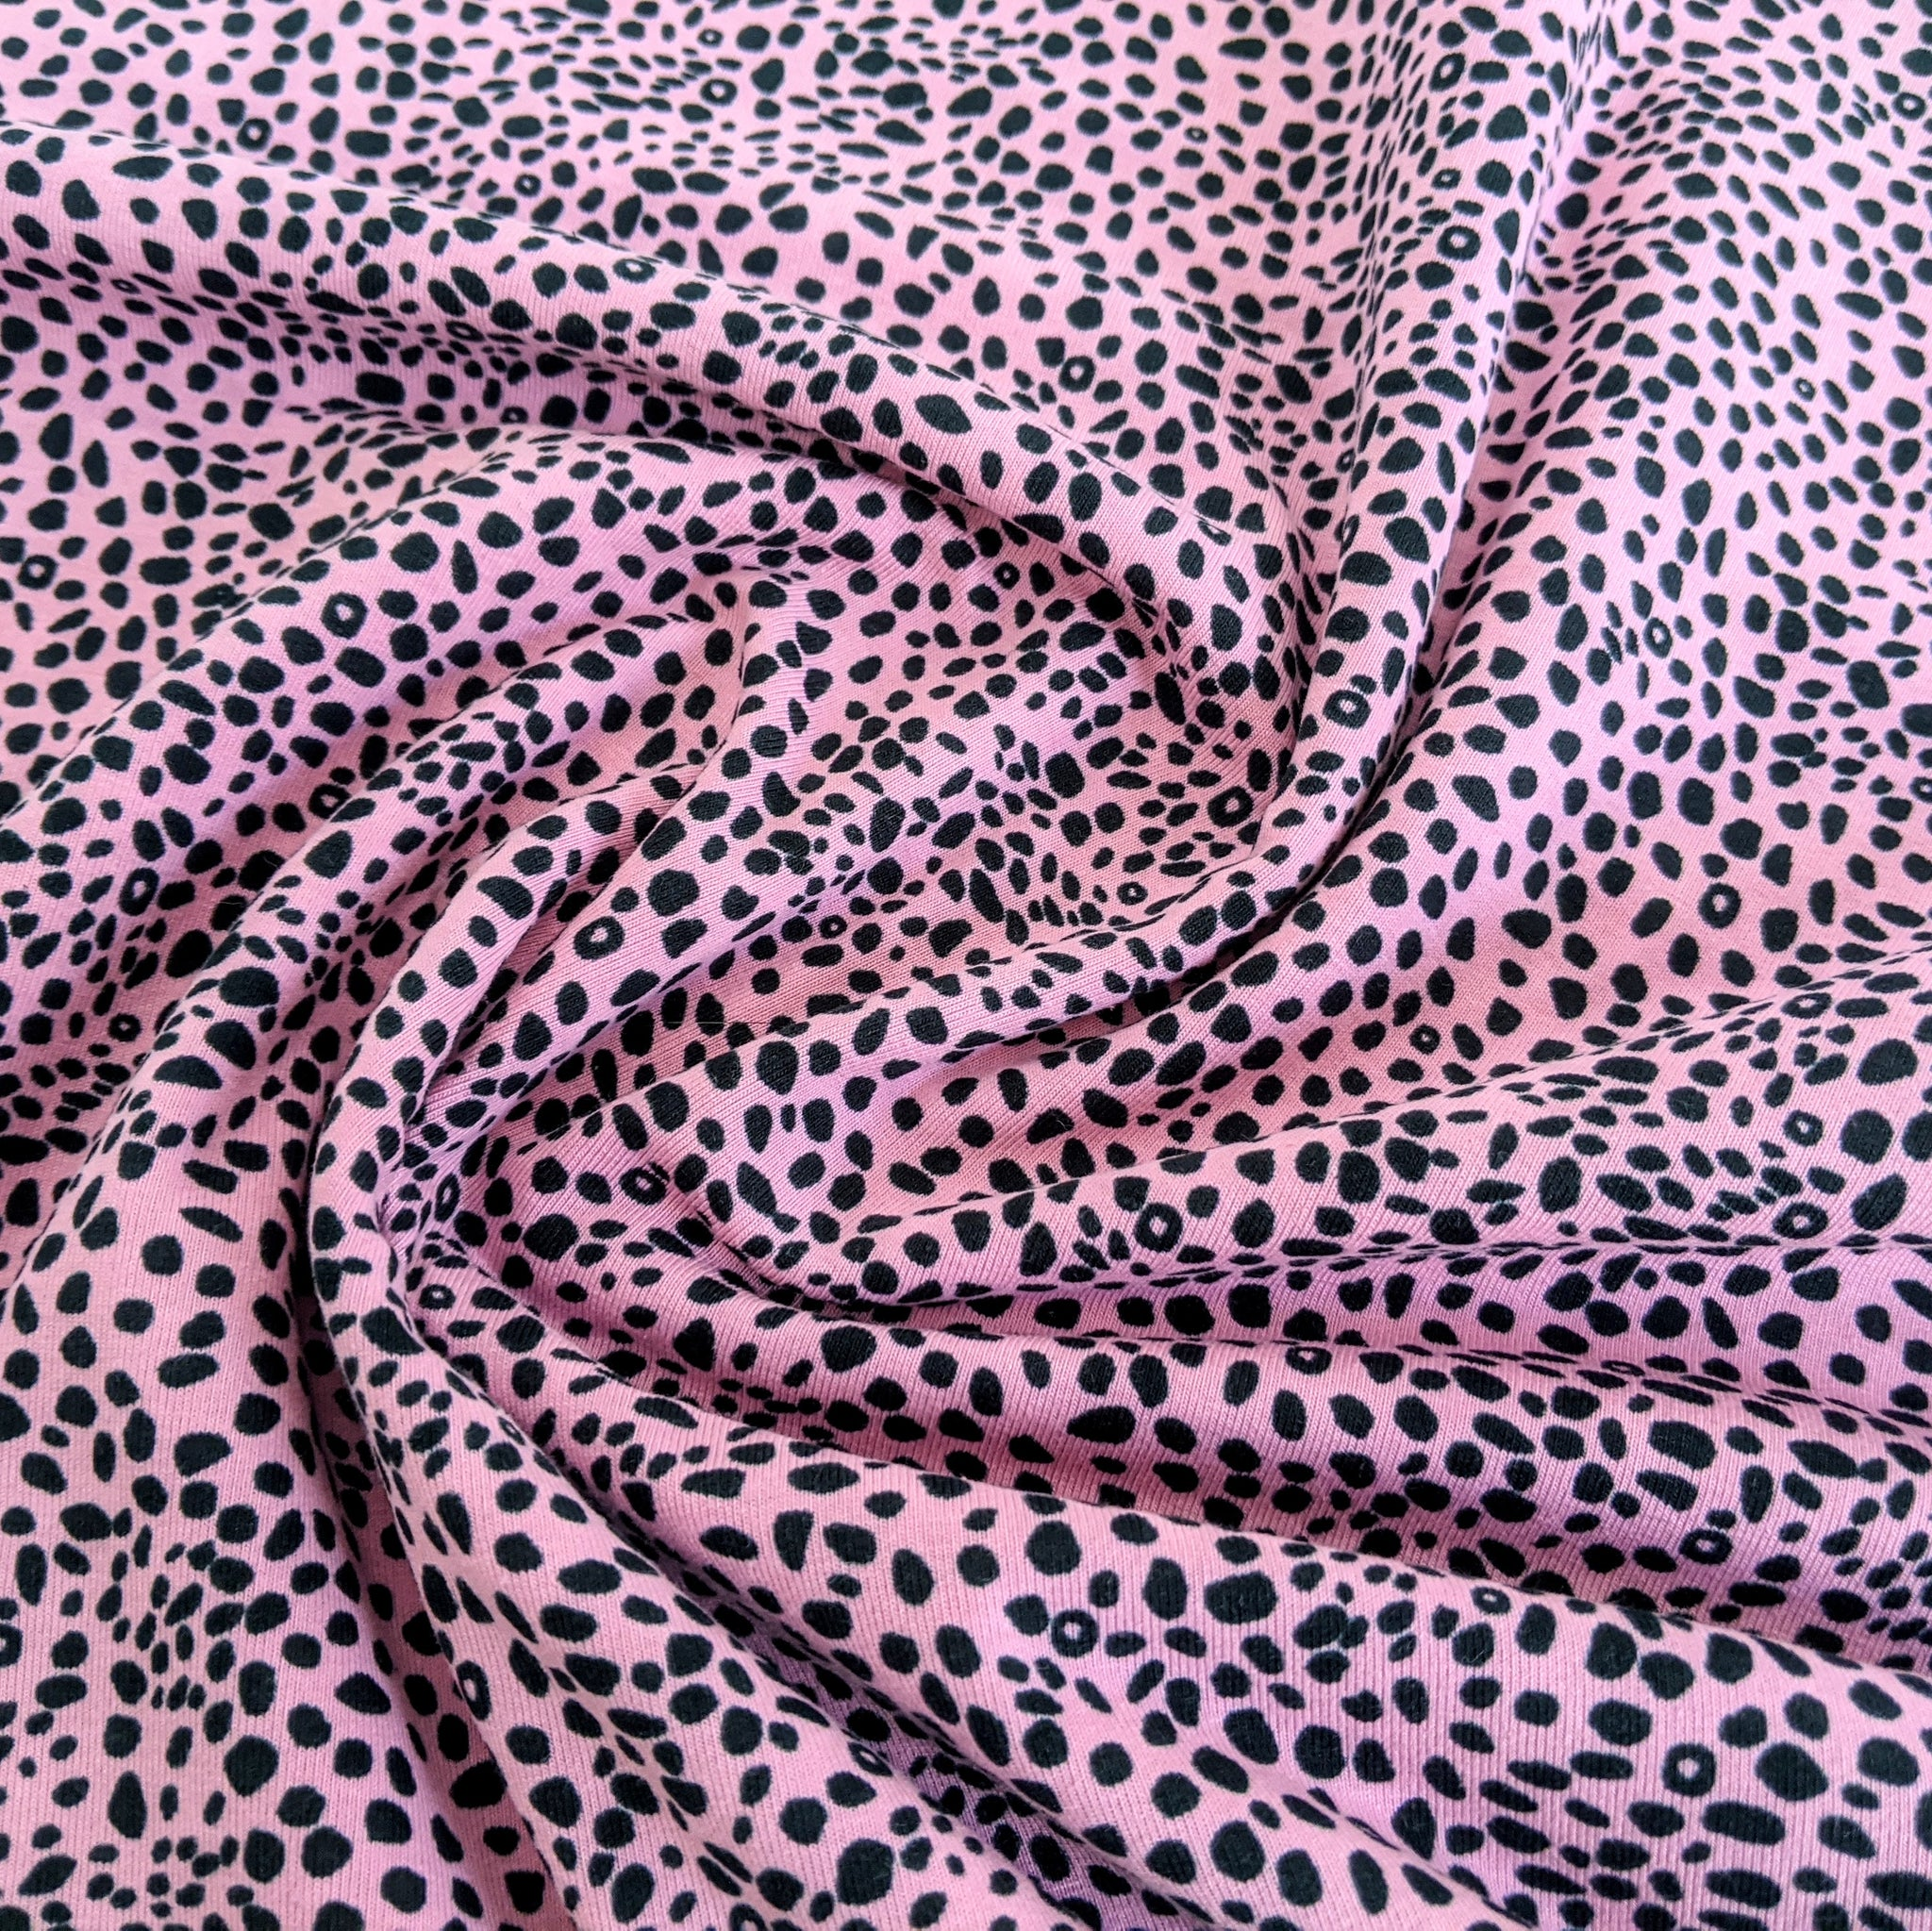 Cheetah print - Cotton elastane jersey